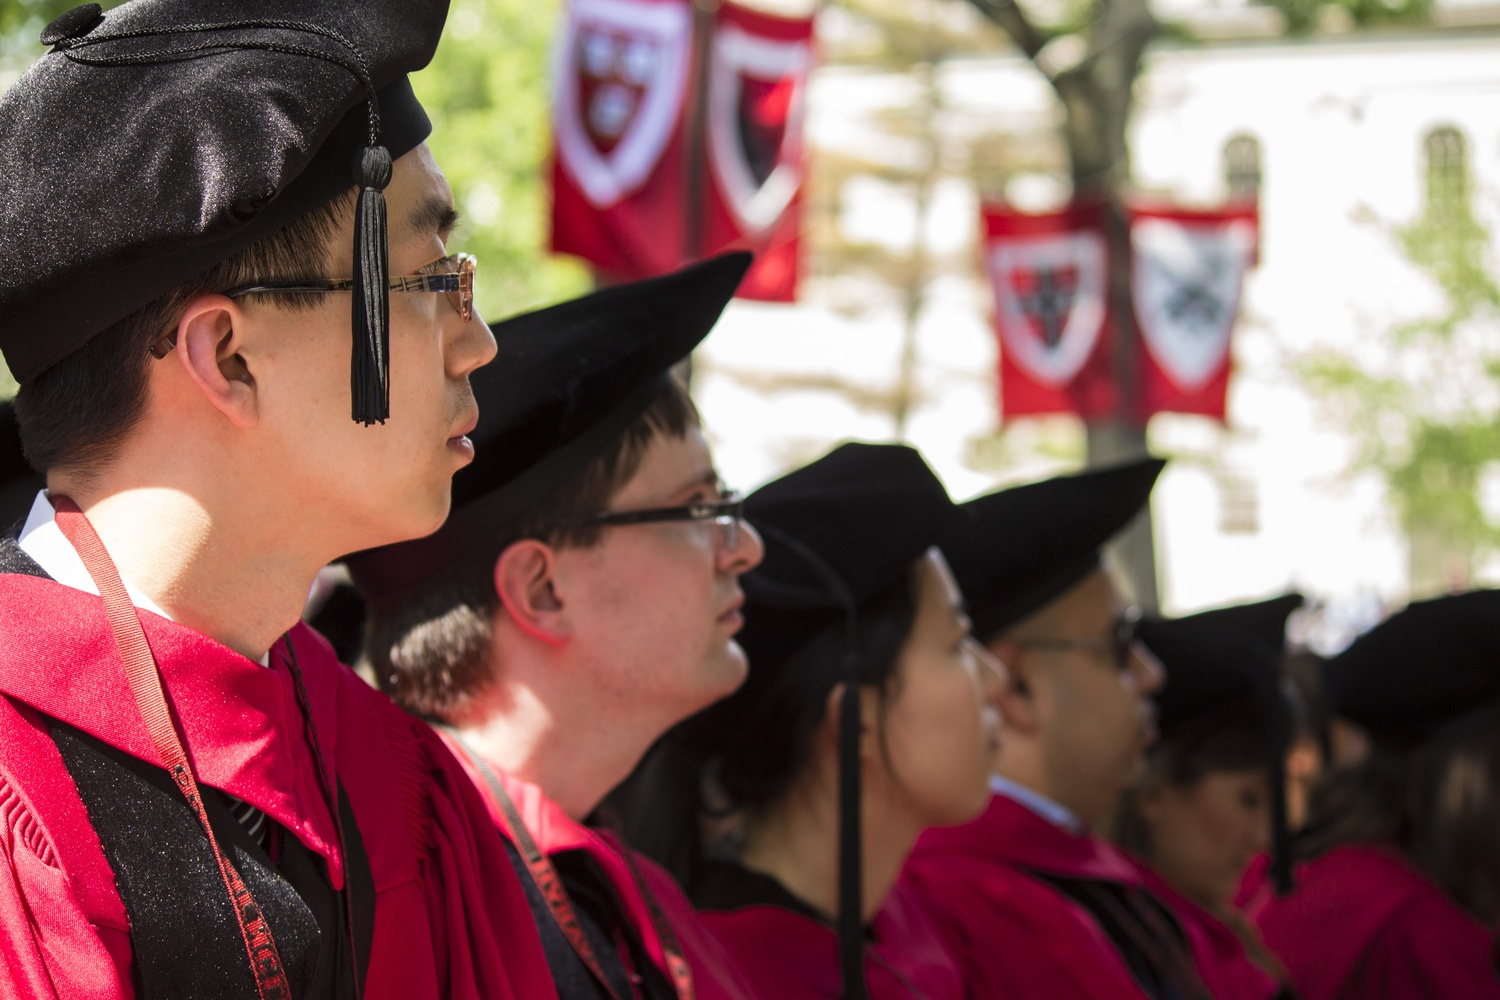 Students in the Graduate School of Arts and Sciences at Commencement in 2016.